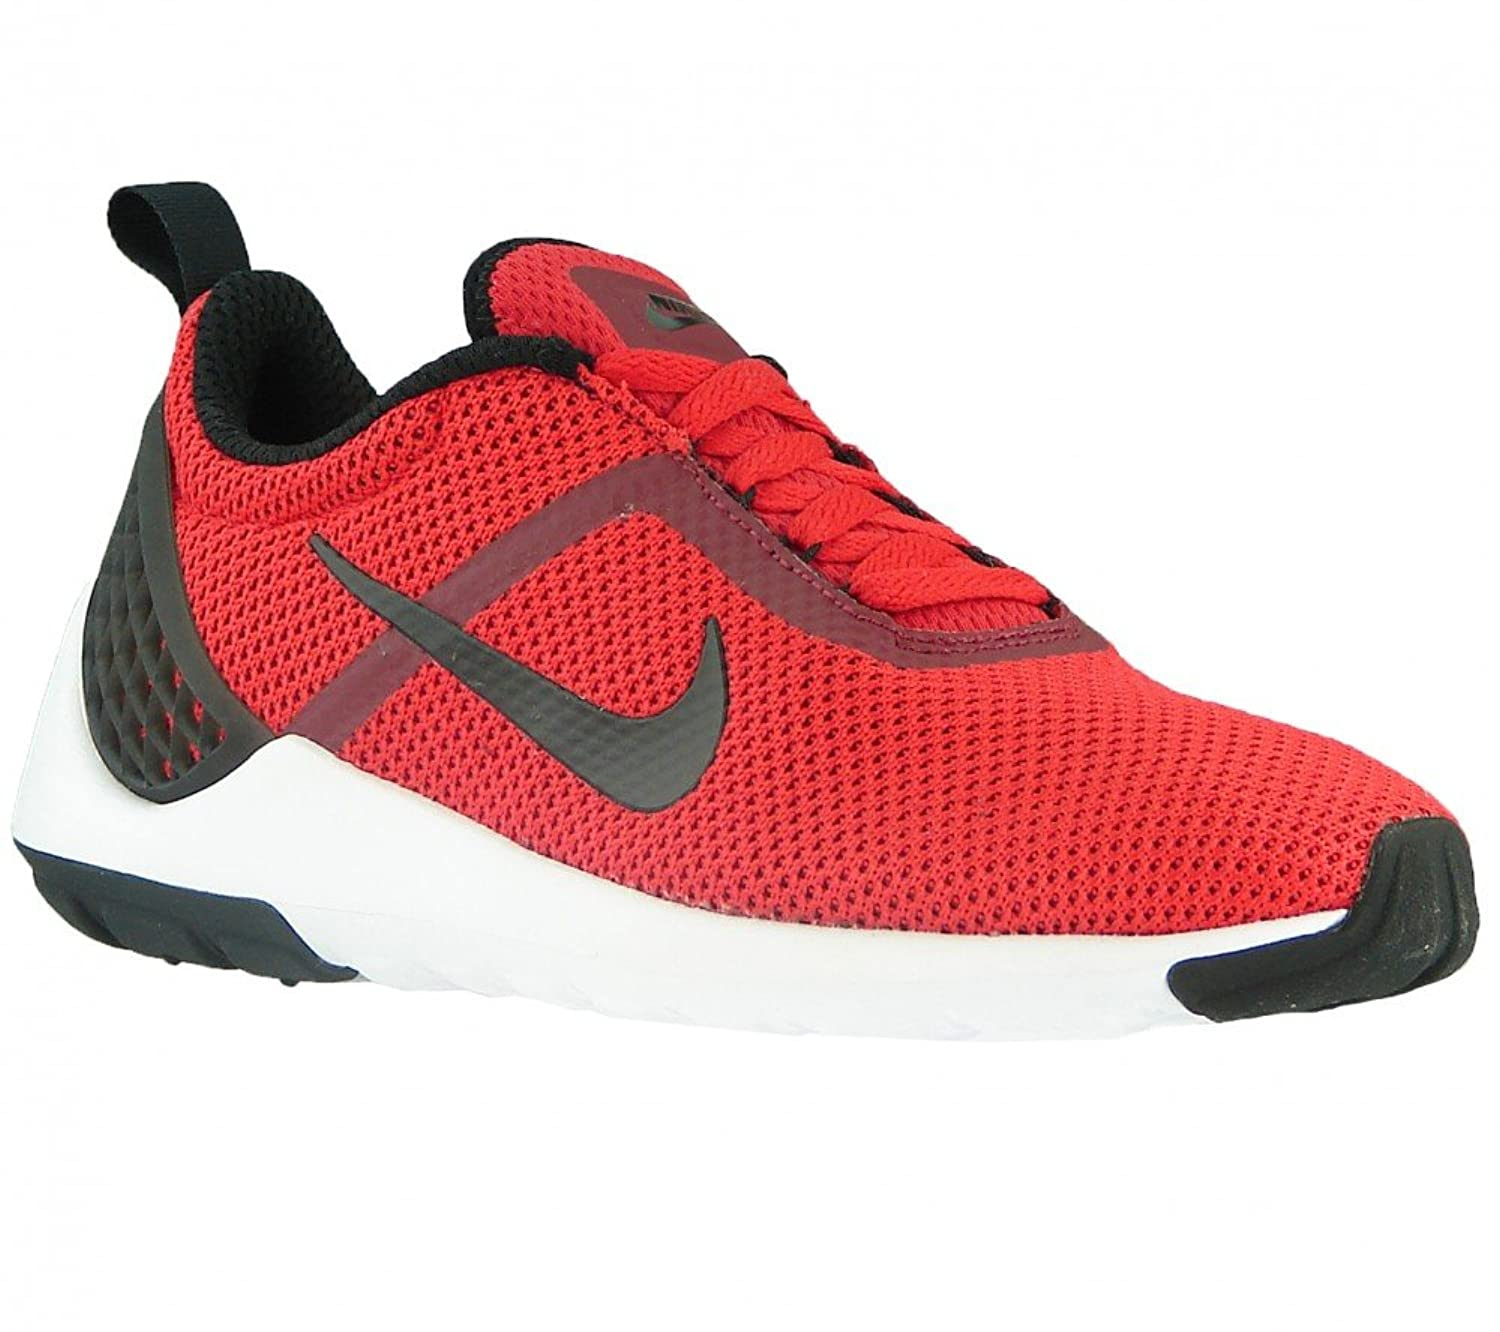 f2f511d7afb All about Amazoncom Nike Mens Kaishi Running Shoe Nike Shoes ...